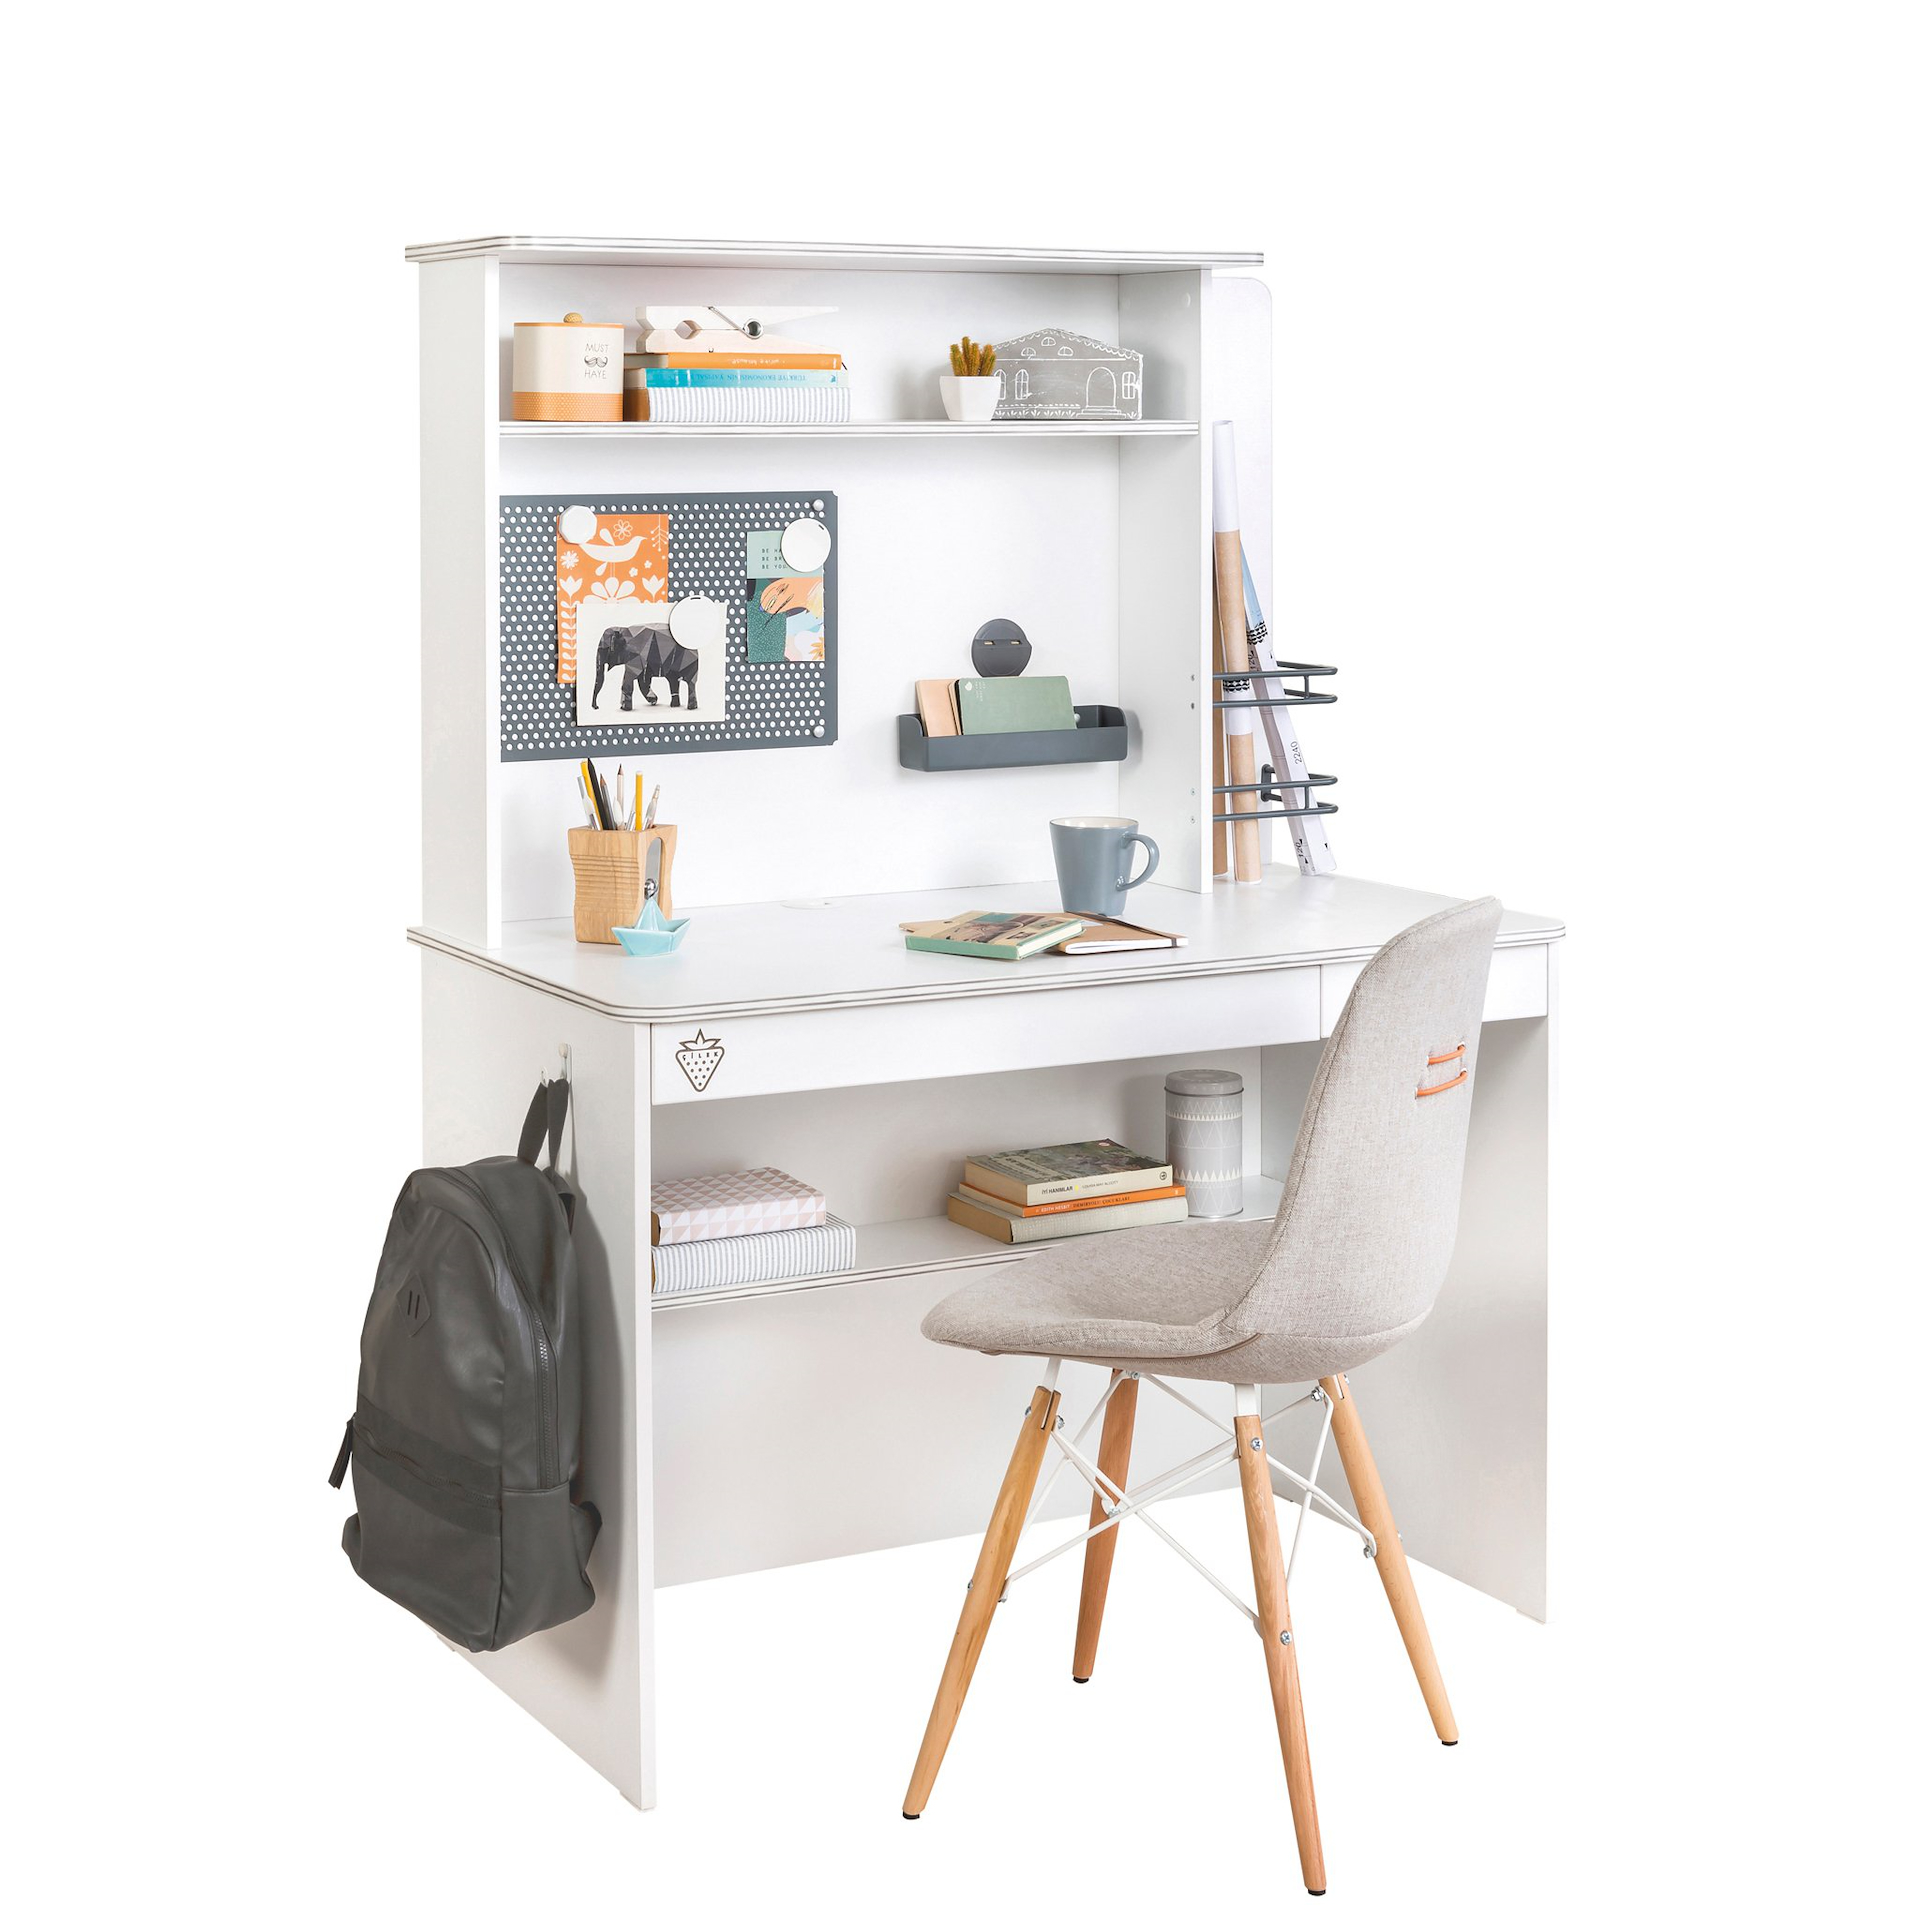 WHITE_STUDY_DESK_WITH_UNIT_1.jpg